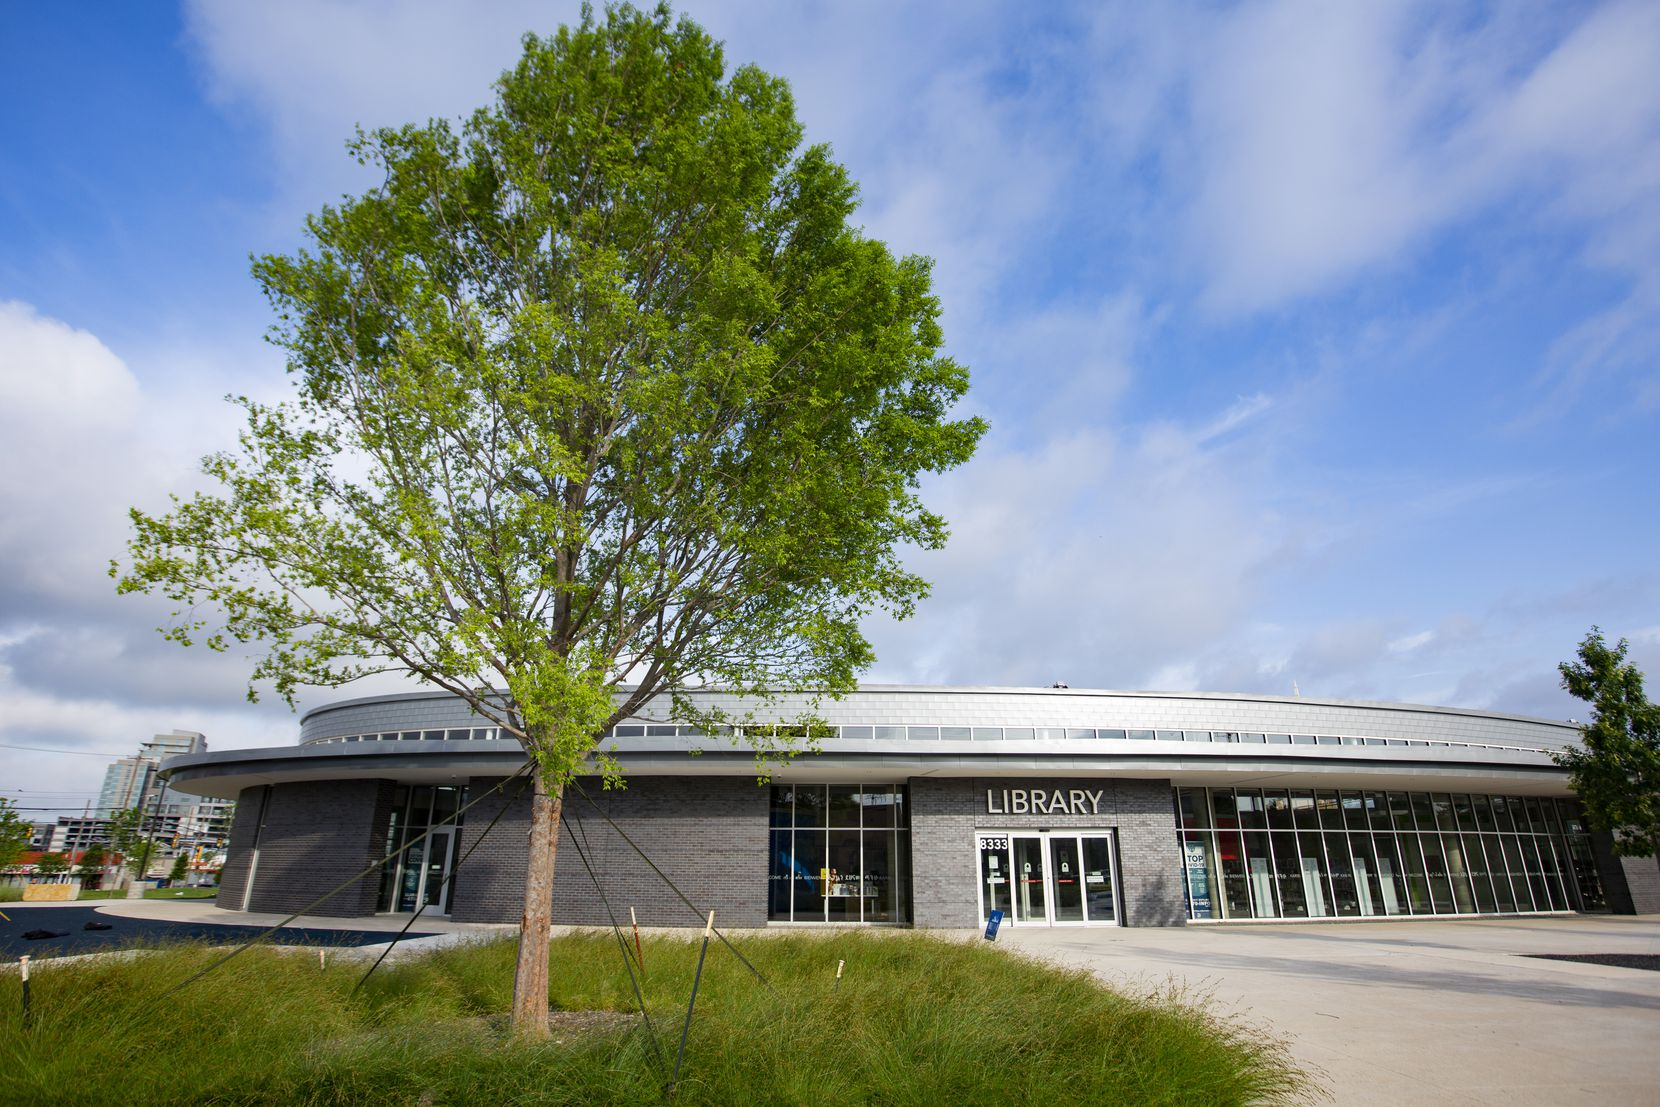 The new Vickery Park Branch Library's thoughtful modern design shows off clean lines and a cool material palette that aims for a high level of sustainability.